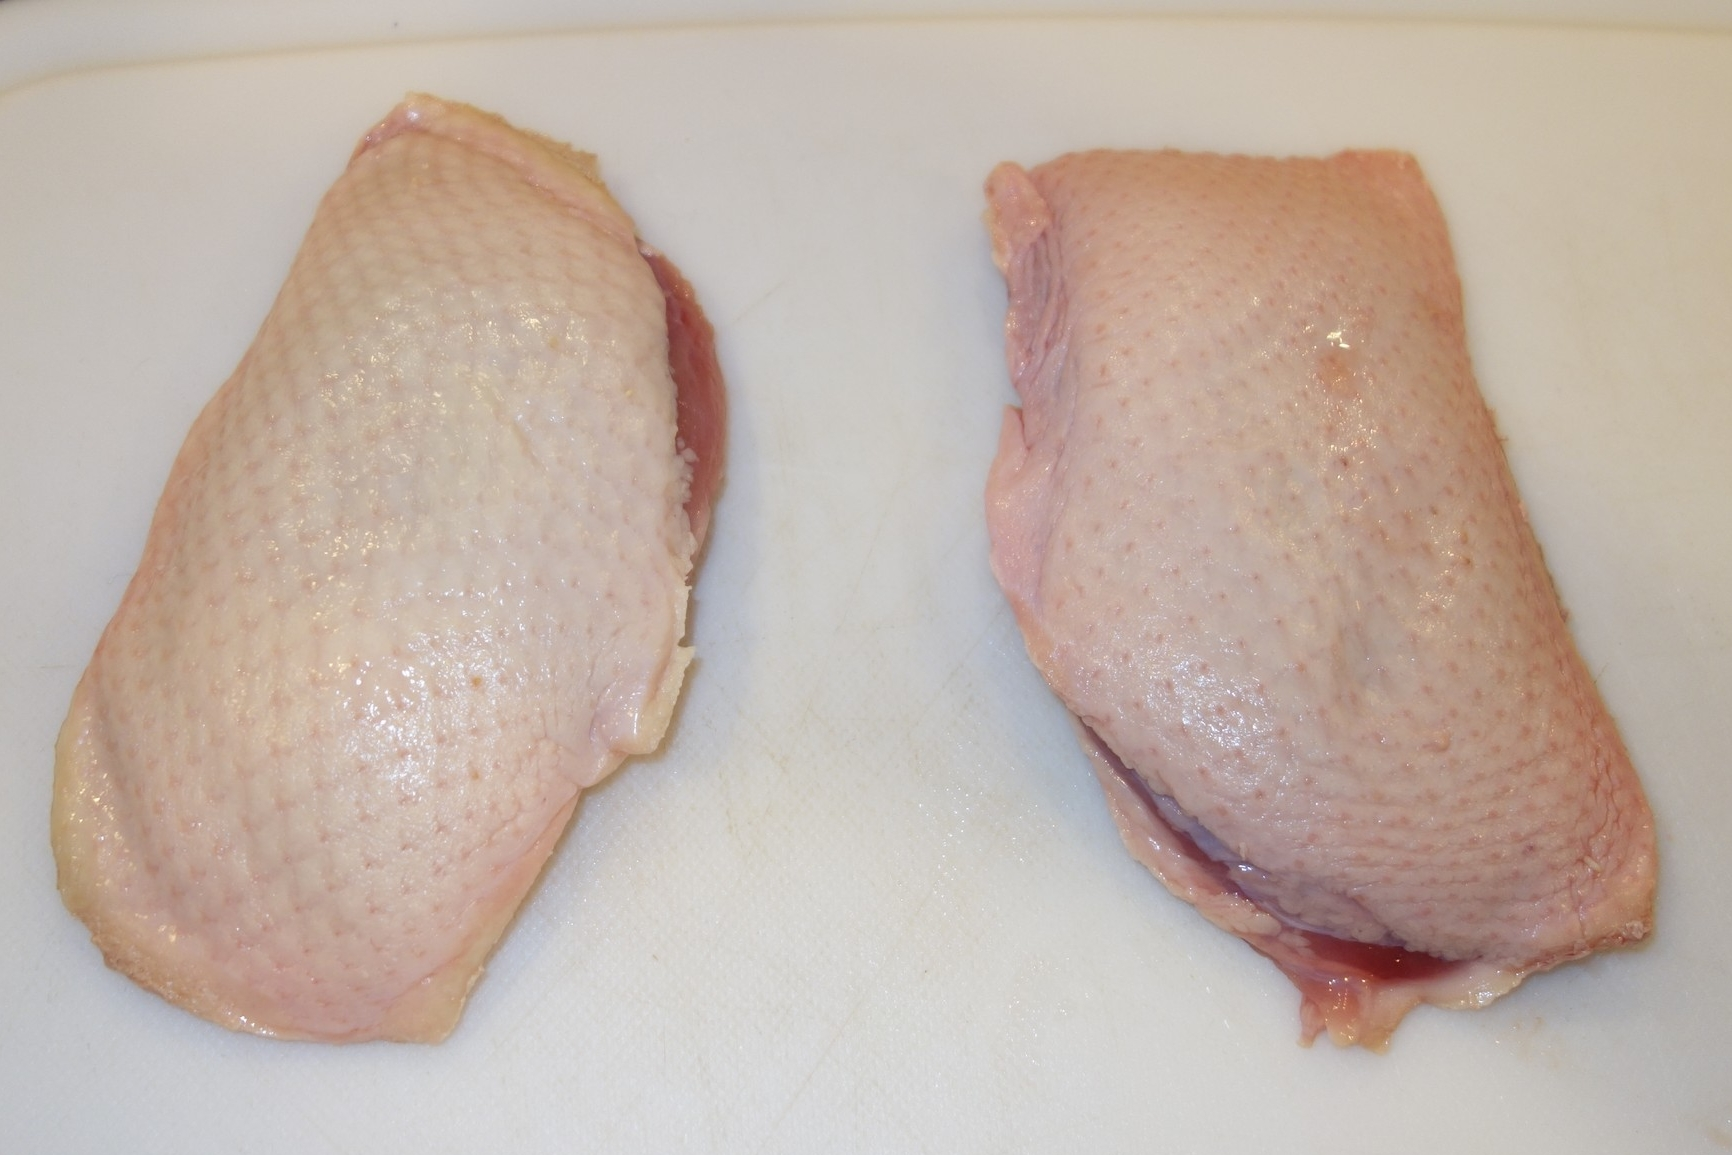 Drain the blood from the packets, then pat each breast dry with paper towels.